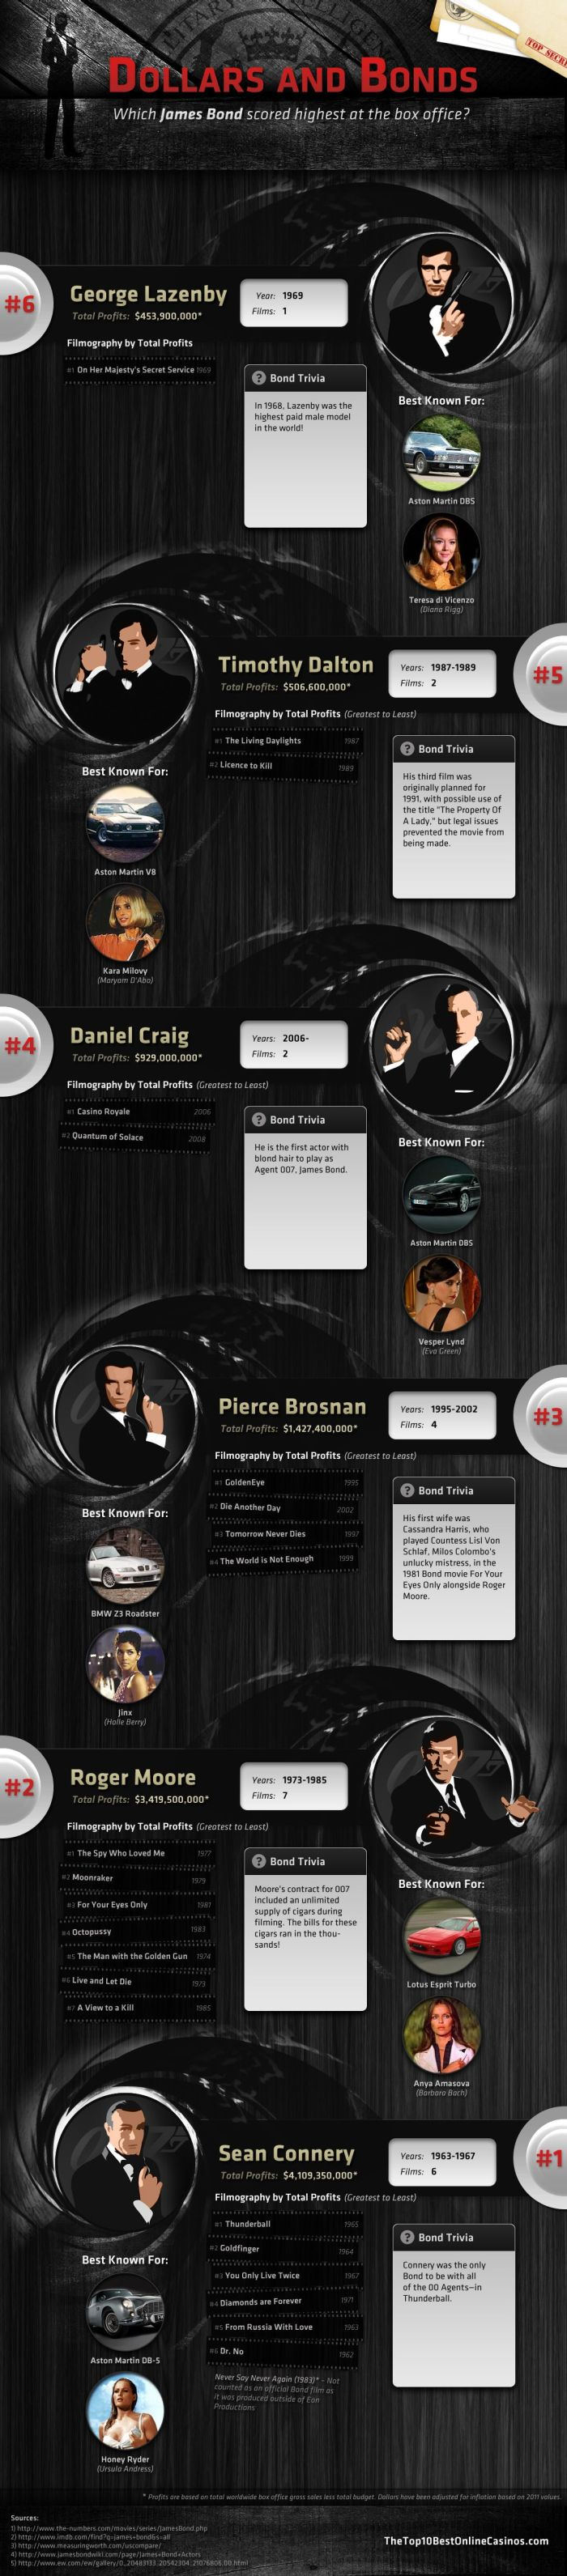 James Bond Box Office (infographic)